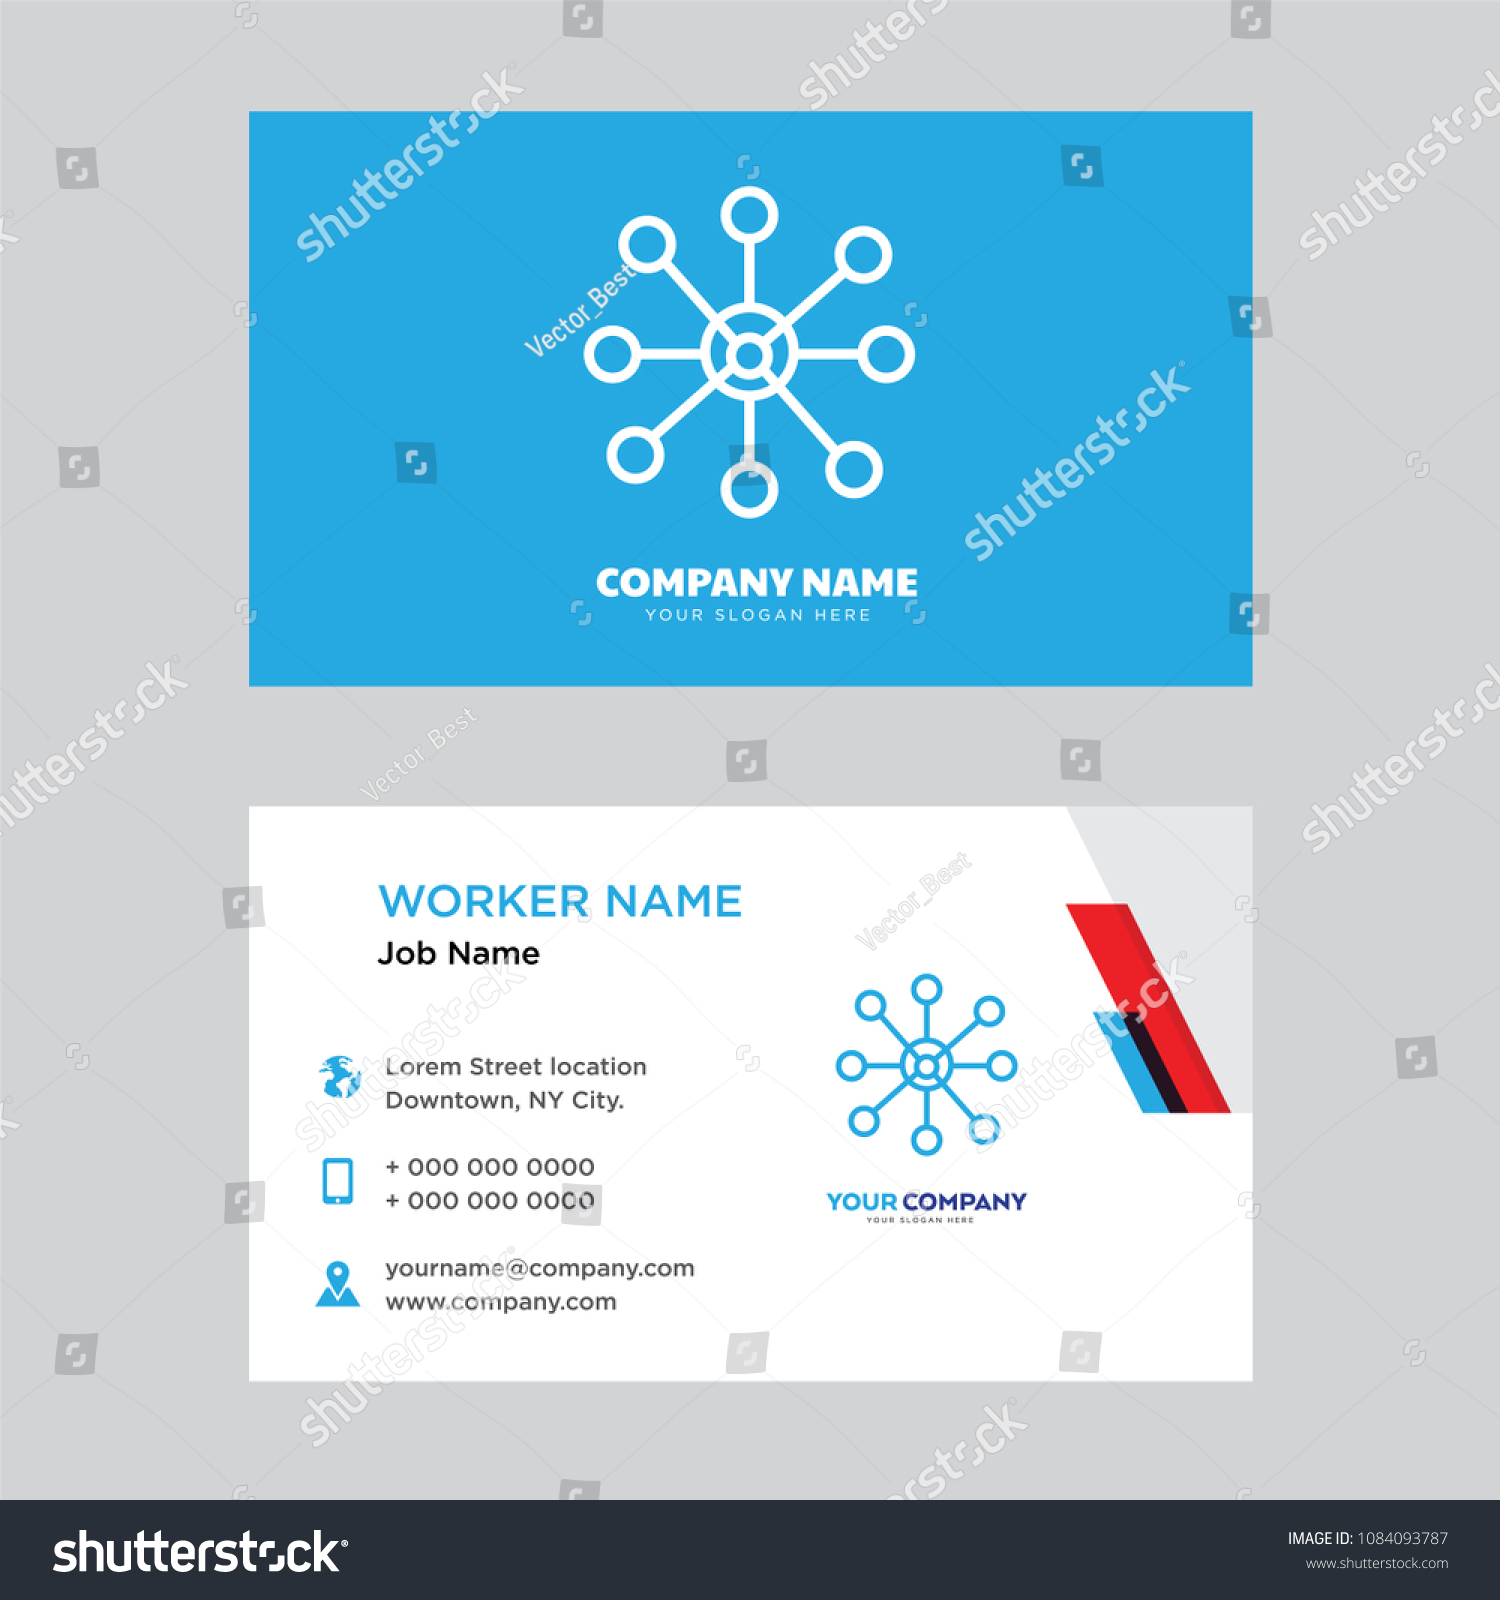 Network business card design template visiting stock vector network business card design template visiting stock vector 1084093787 shutterstock flashek Images